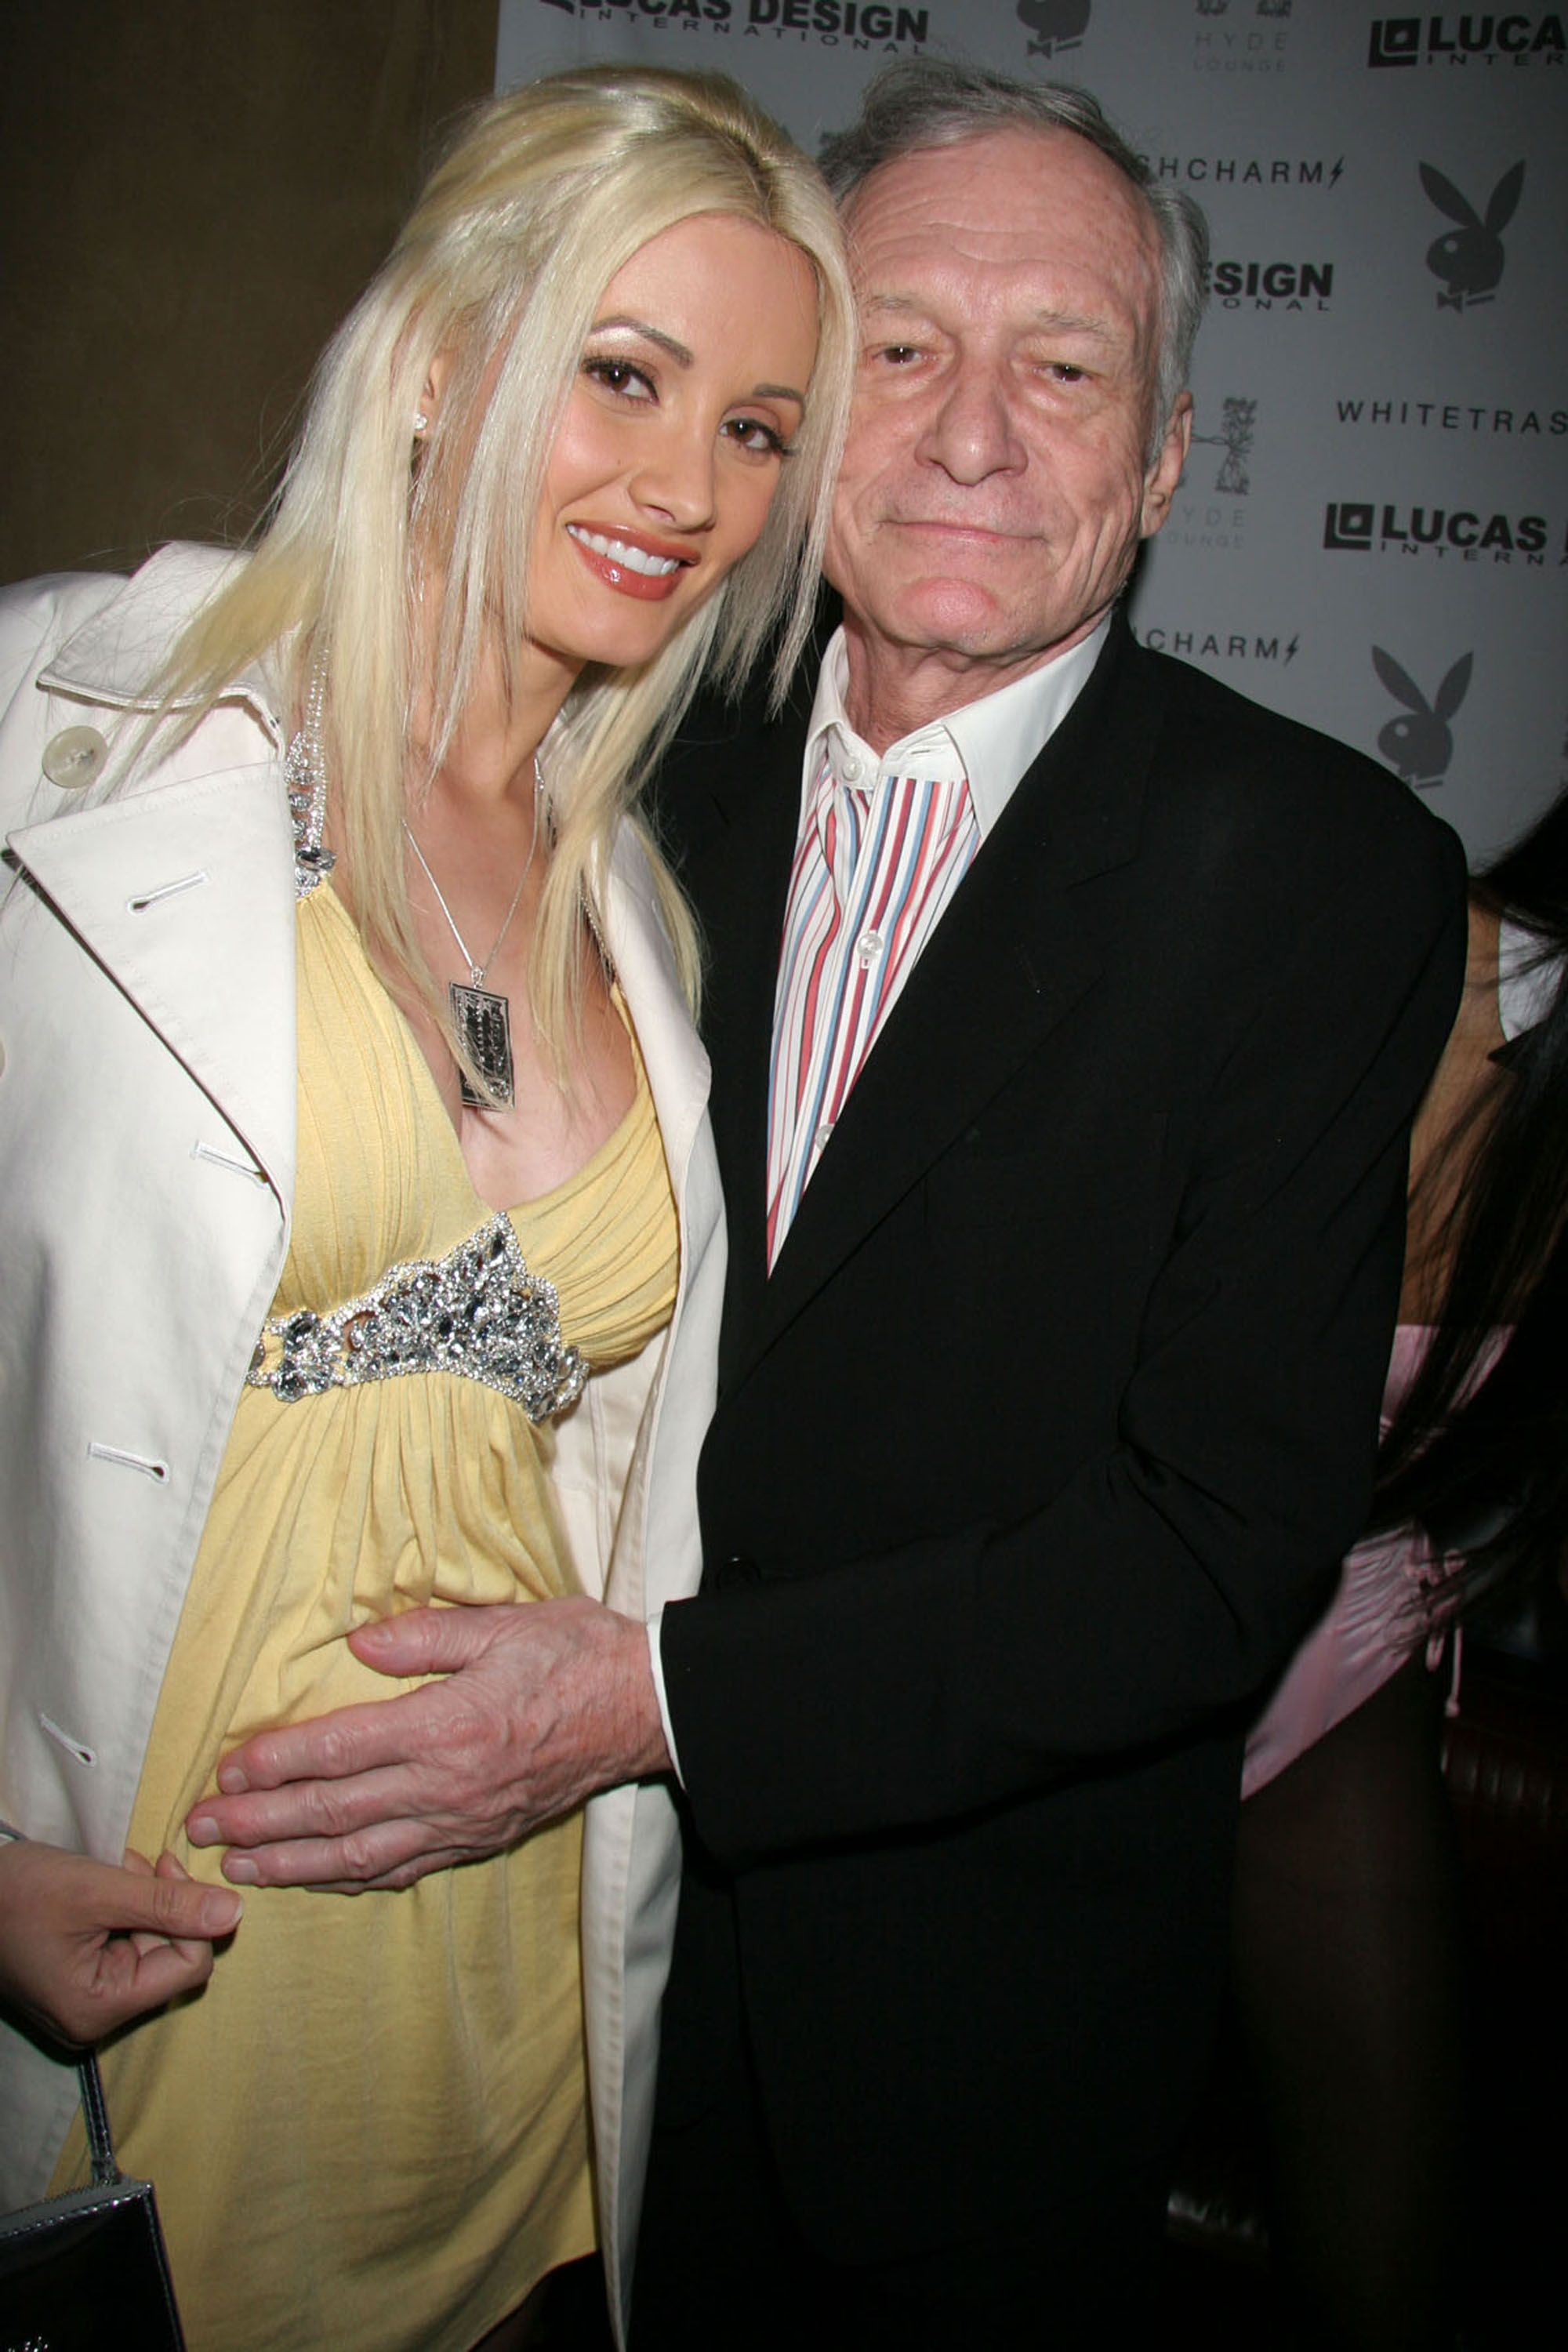 Former Playgirl Holly Madison Reveals She And Hugh Hefner Never Had Sex Alone In The Seven Years They Were Together